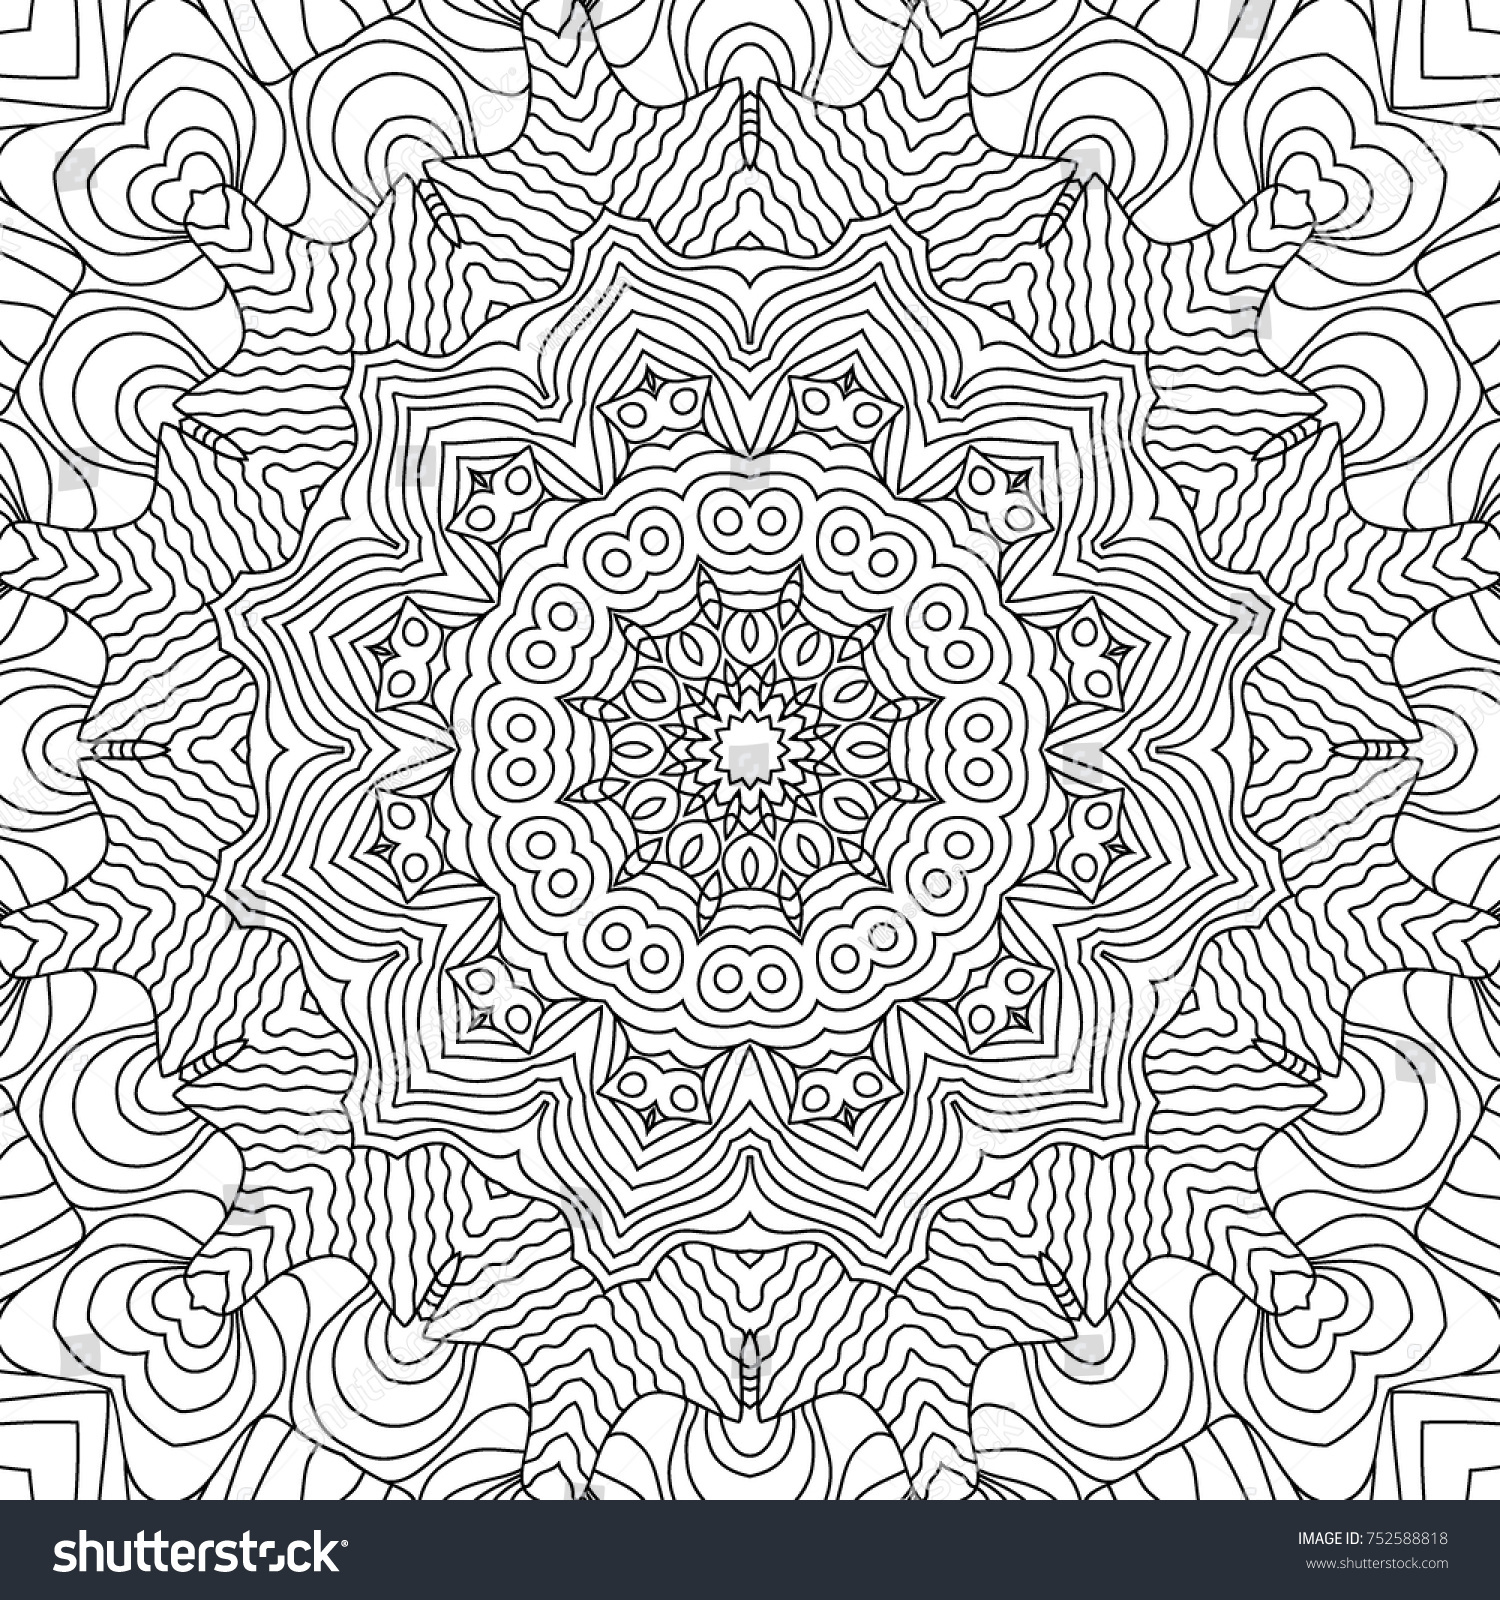 Coloring Page Adults Part Intricate Mandala Stock Vector 752588818 ...